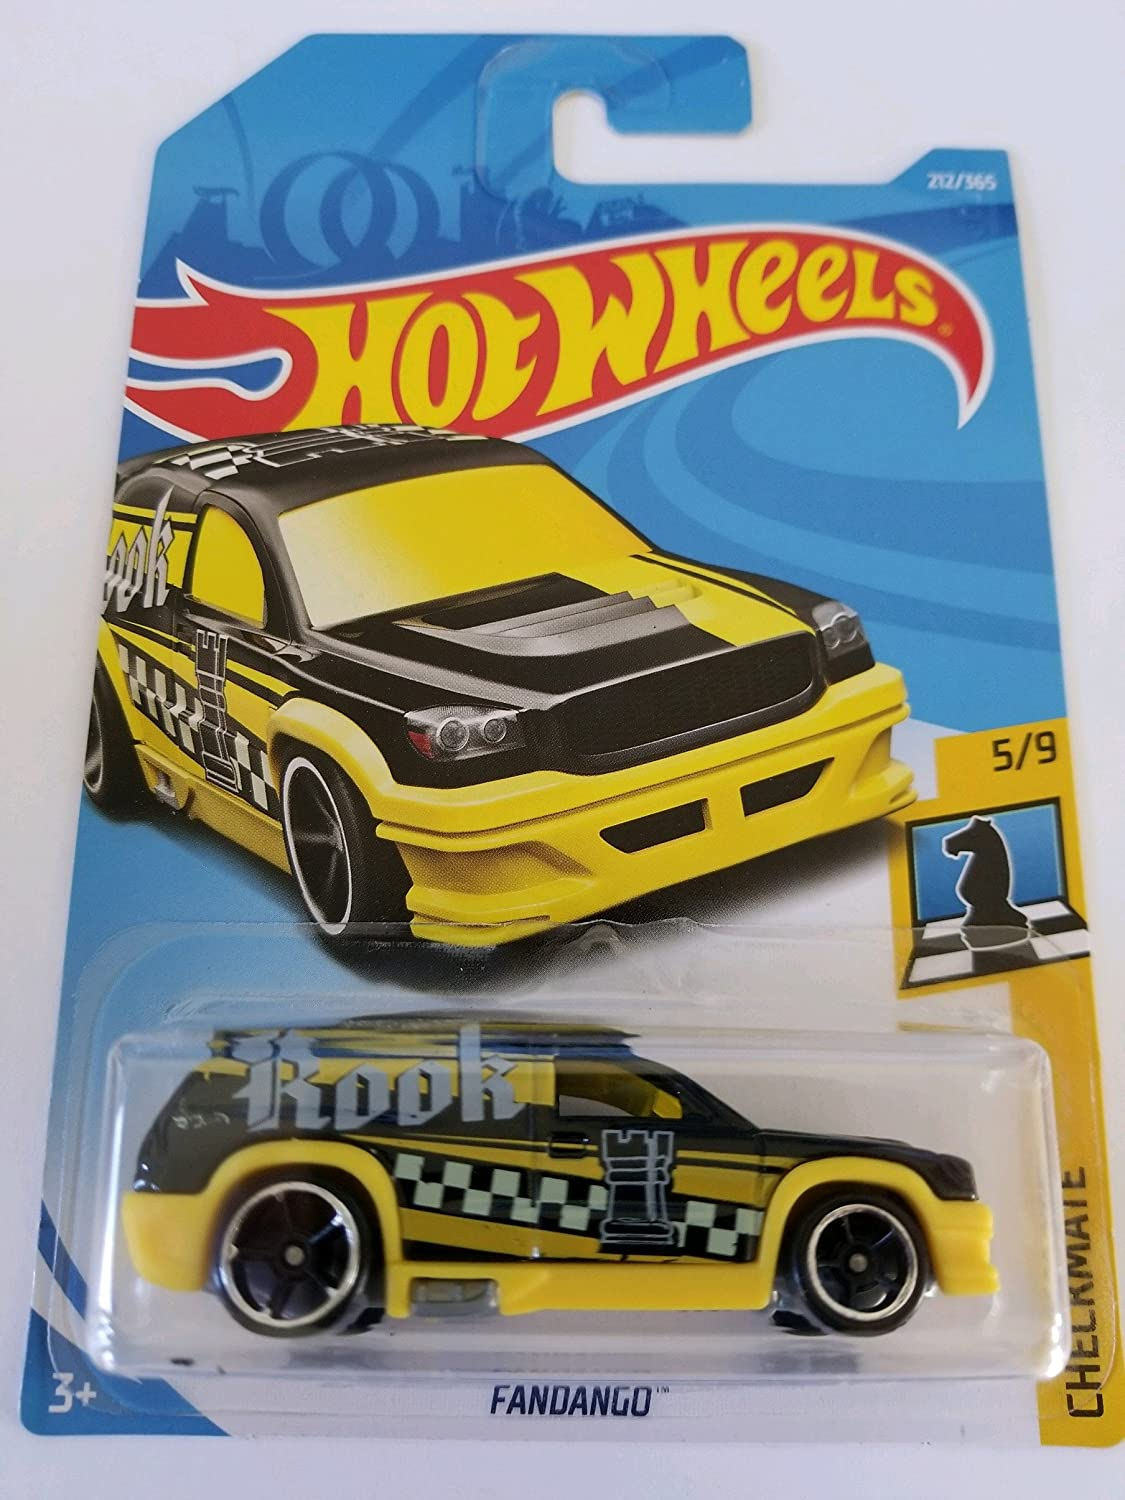 336//365 Rook White and Yellow Hot Wheels 2018 50th Anniversary Checkmate Fandango